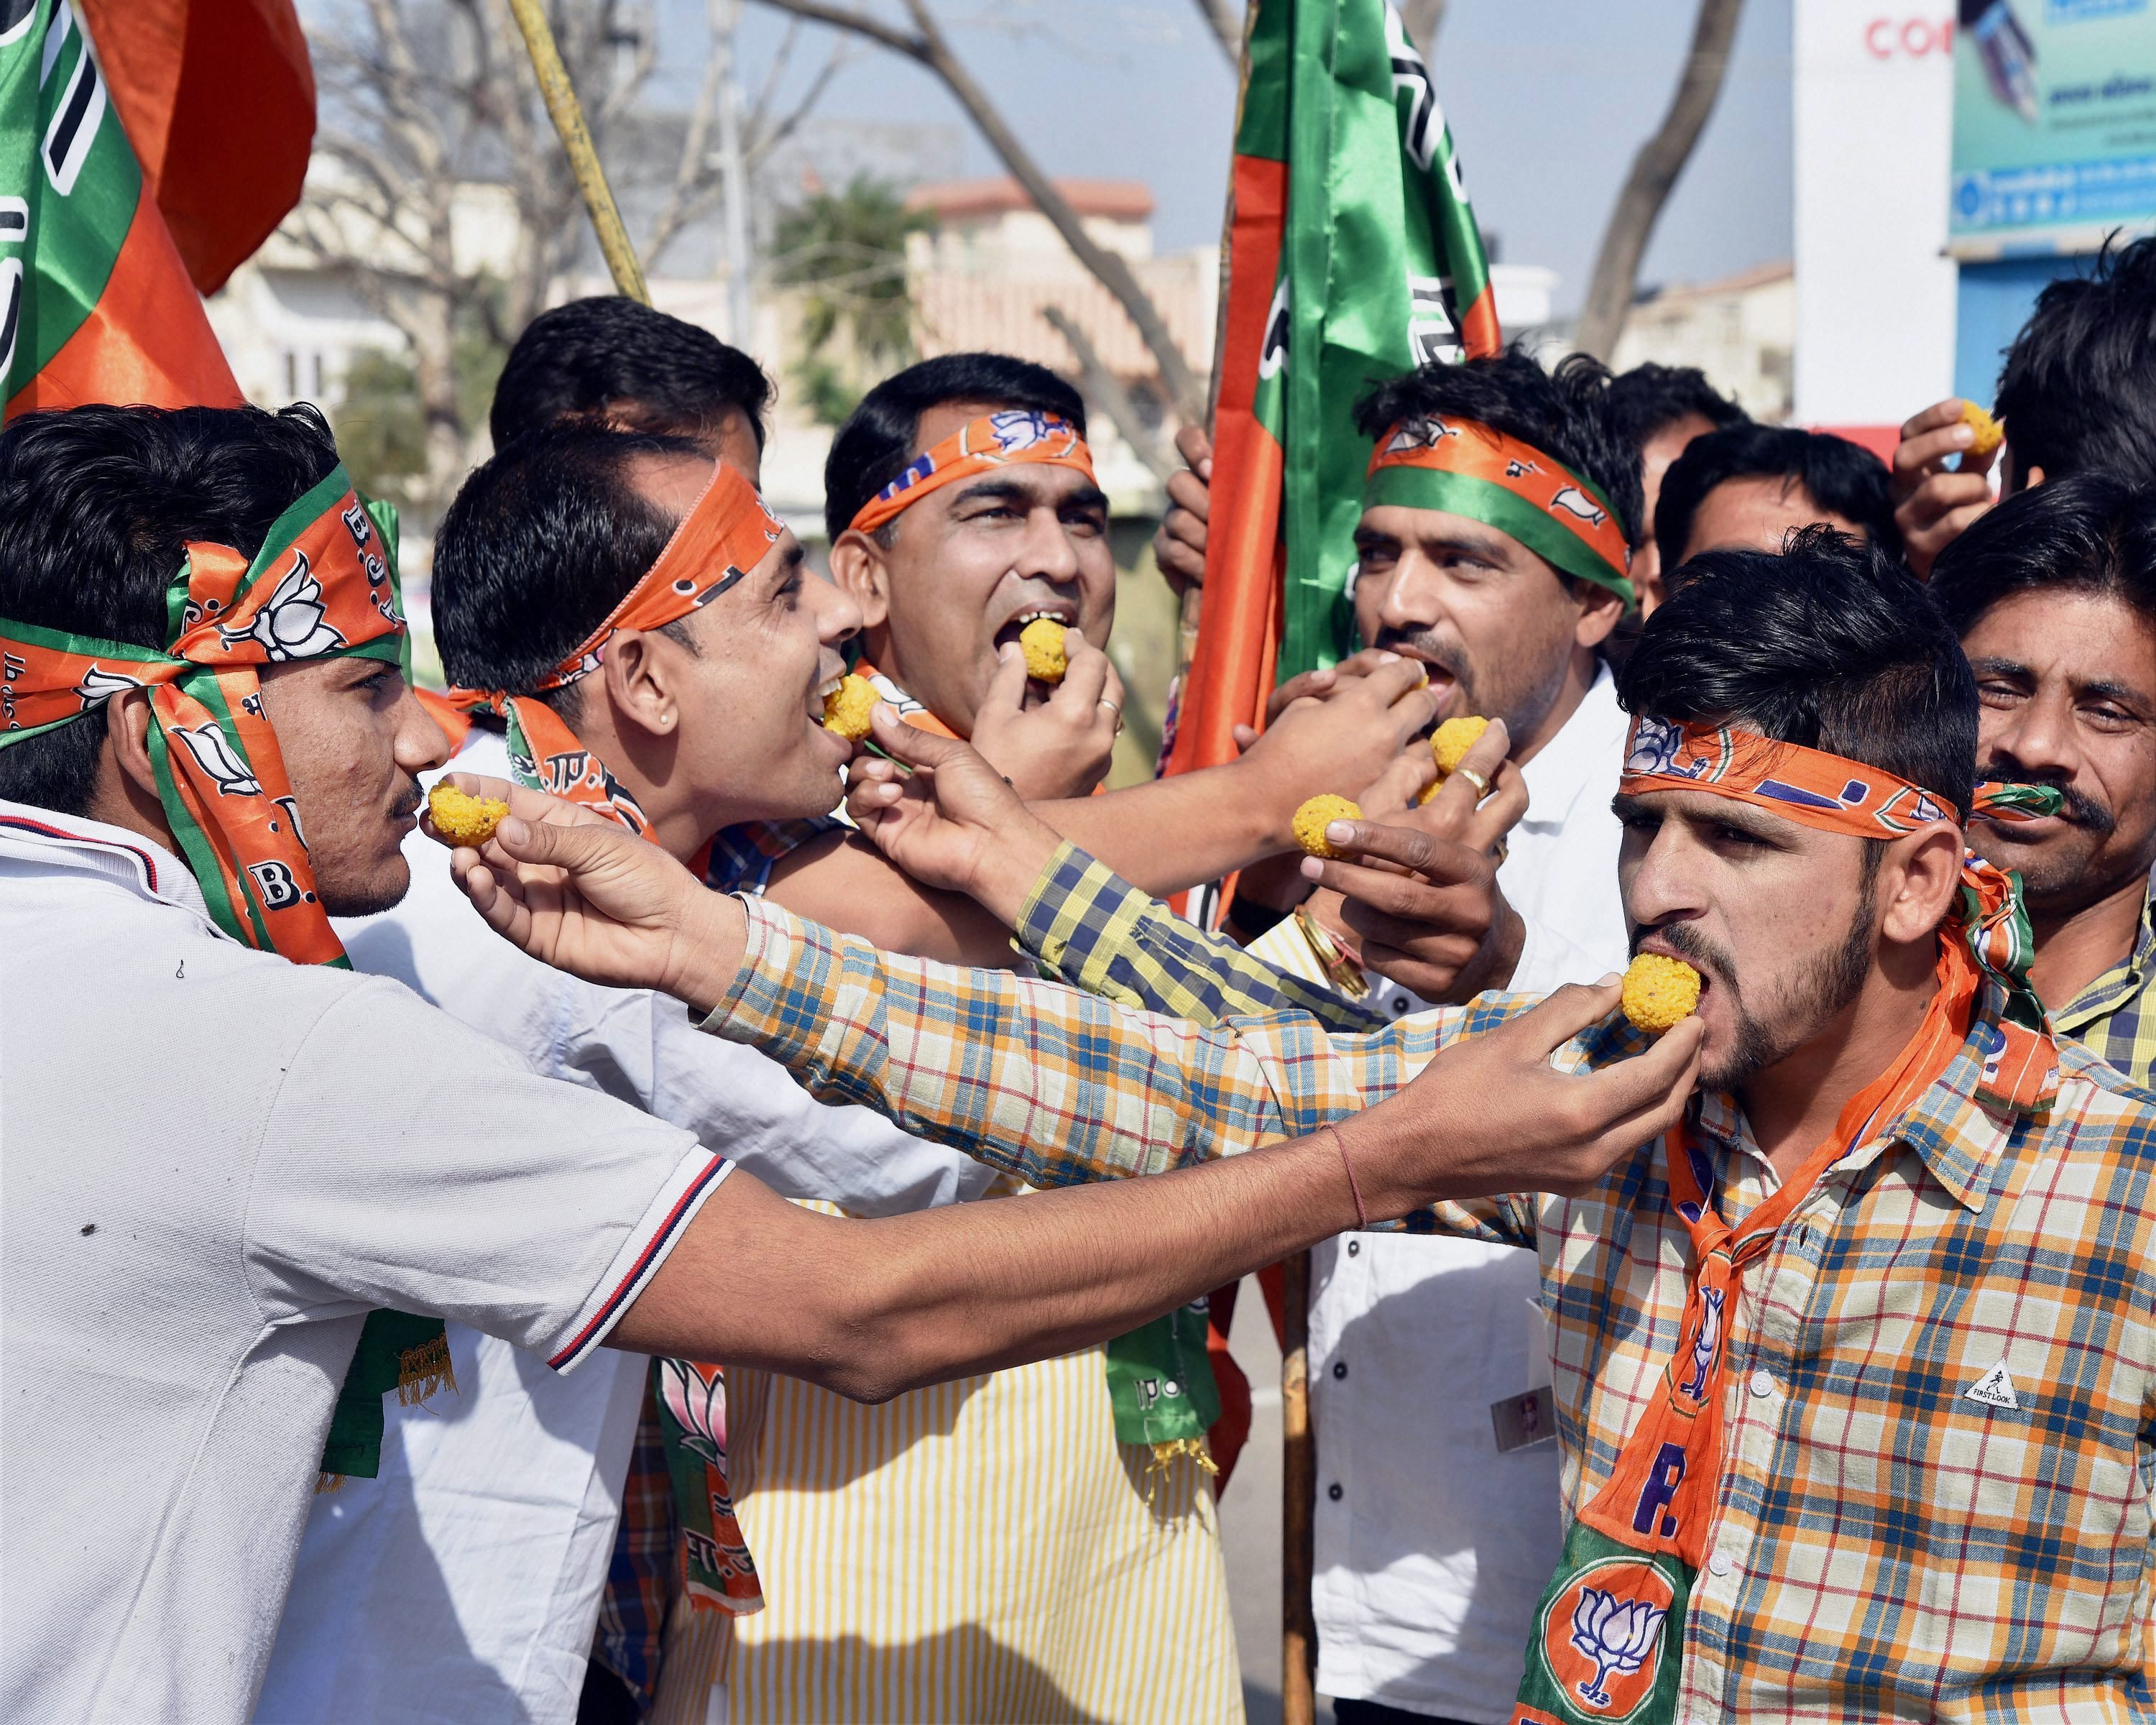 Bikaner: BJP supporters celebrate as early trends show the party's thumping win in the UP Election Results assembly polls, in Bikaner on Saturday. PTI Photo (PTI3_11_2017_000025B)